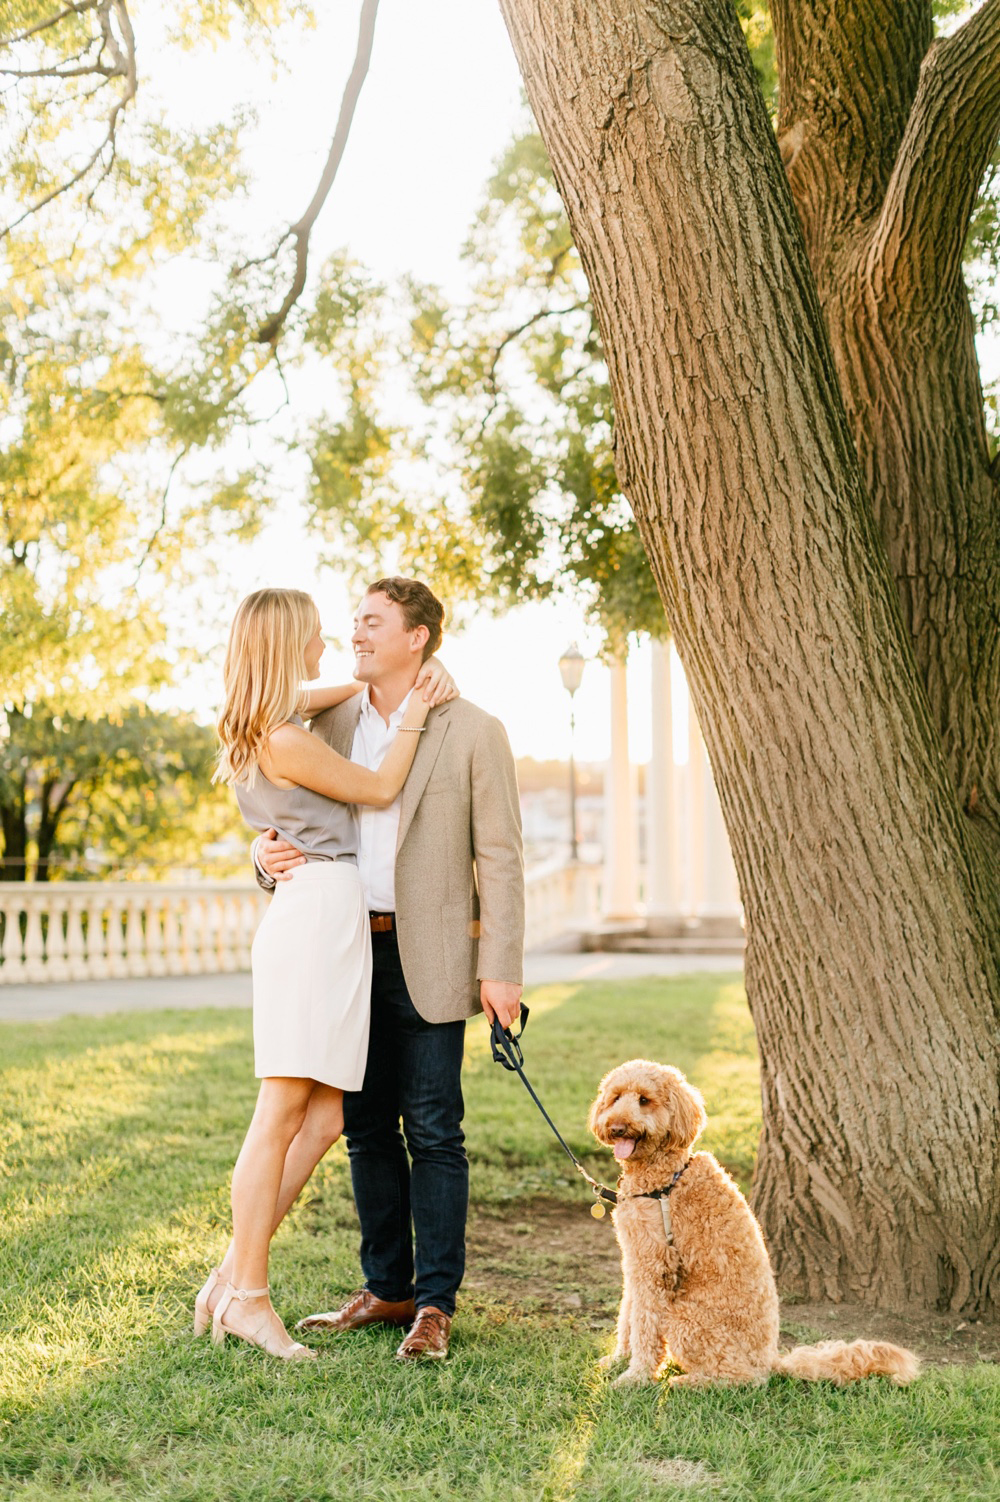 30 Katie&DrewEngagement 146 Rodin Museum Engagement Philadelphia Engagement Philadelphia Wedding Photographer Fine Art Wedding Photographer Light And Airy